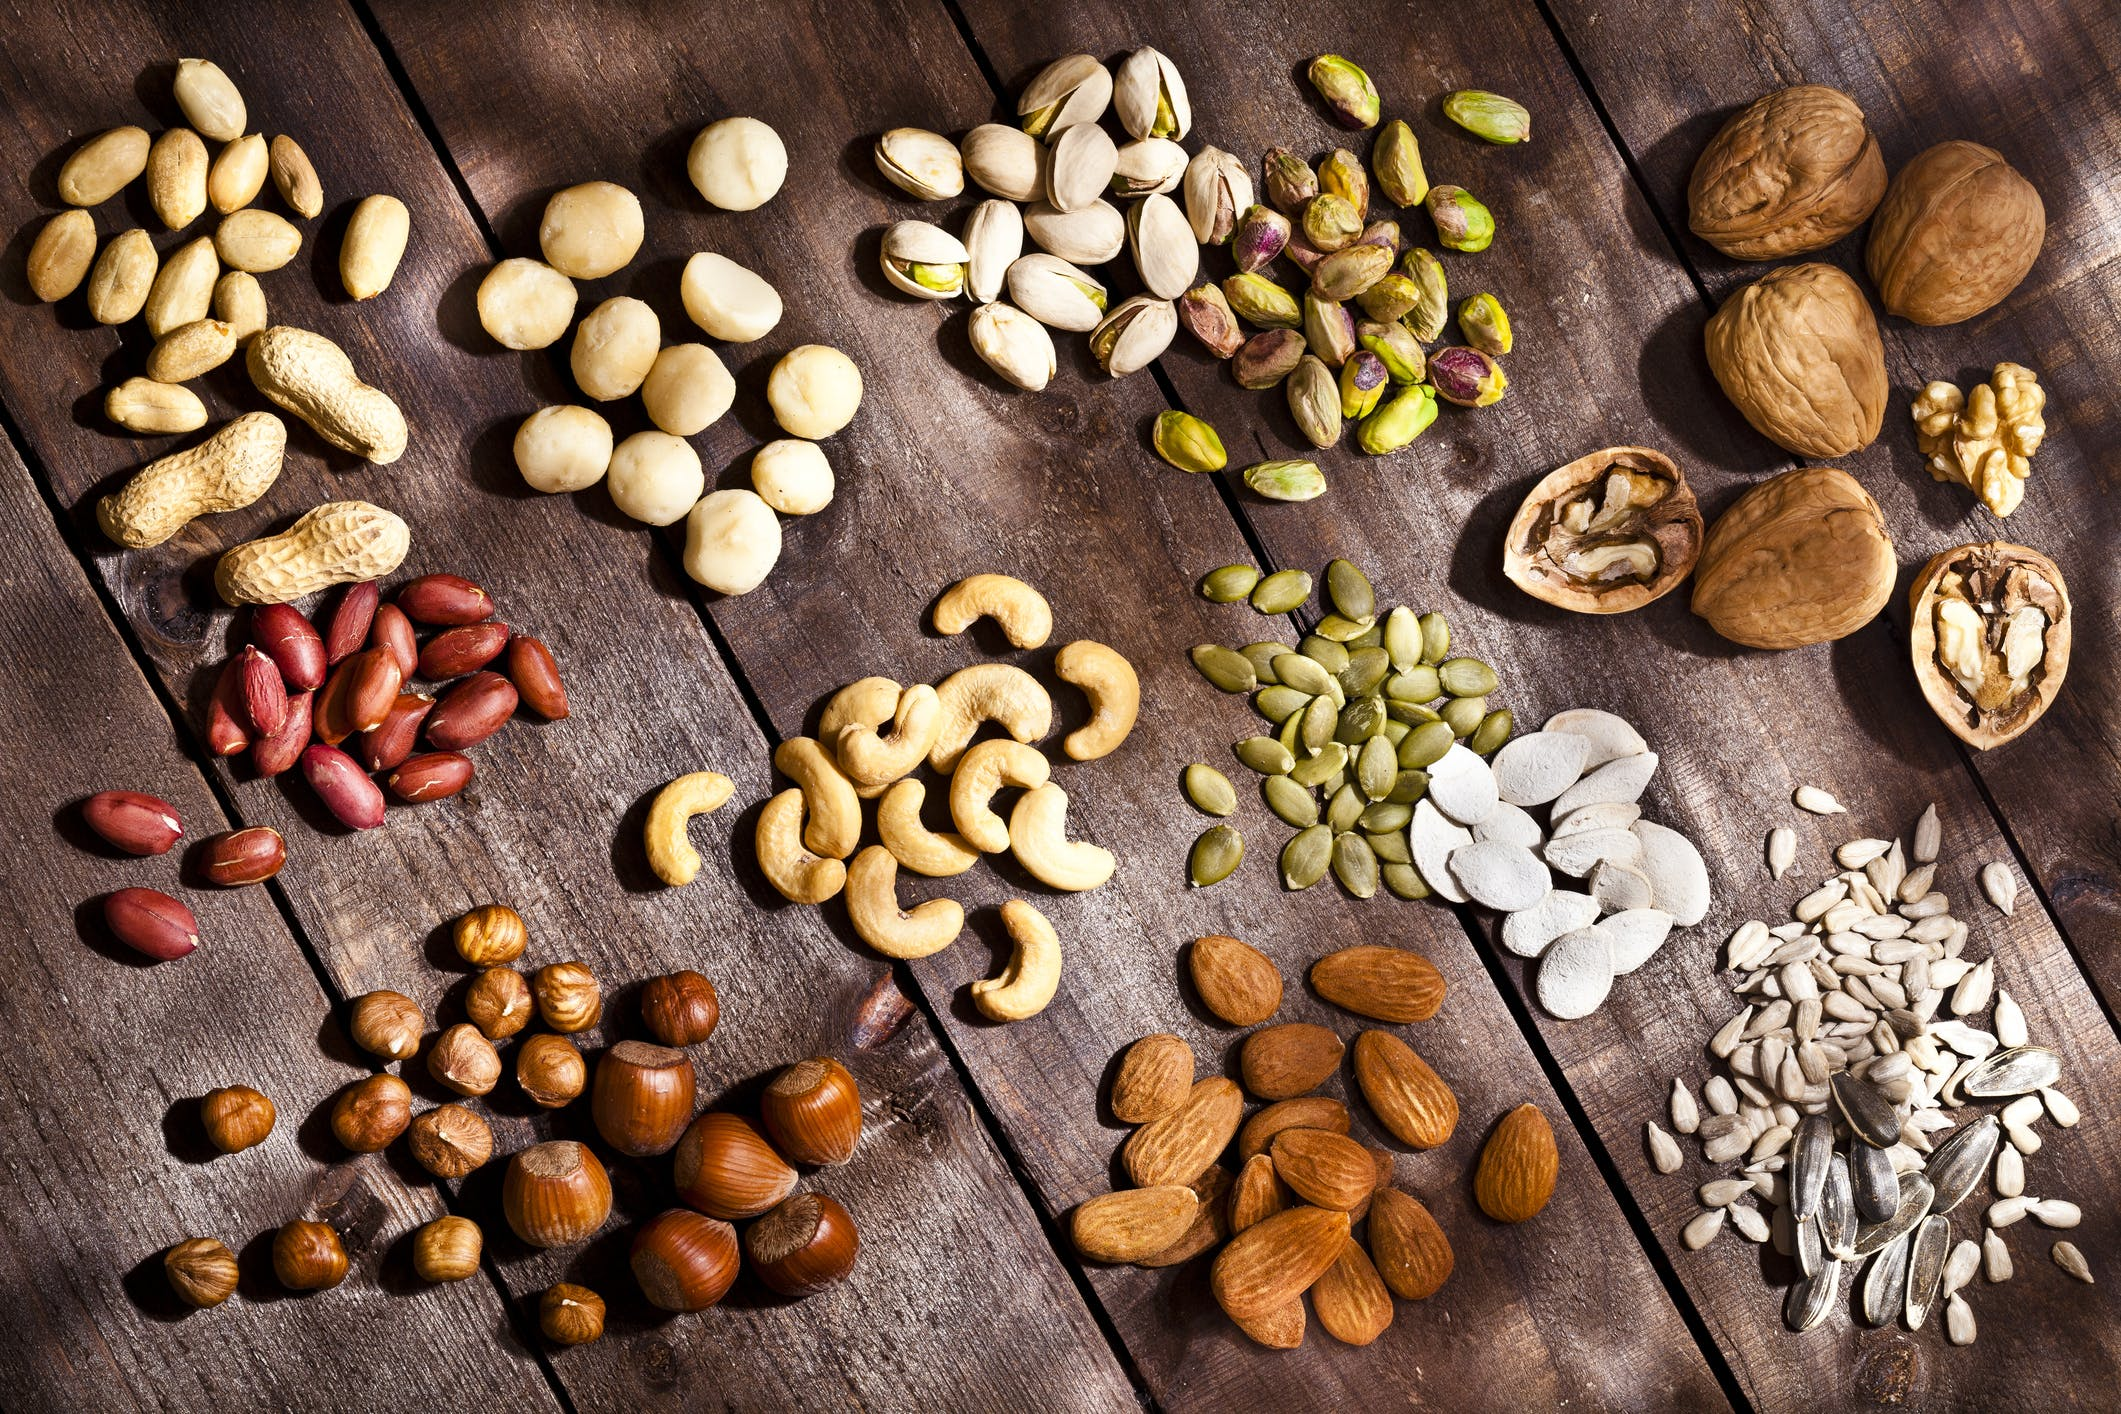 #5 Top weight-loss tip: Avoid dairy and nuts